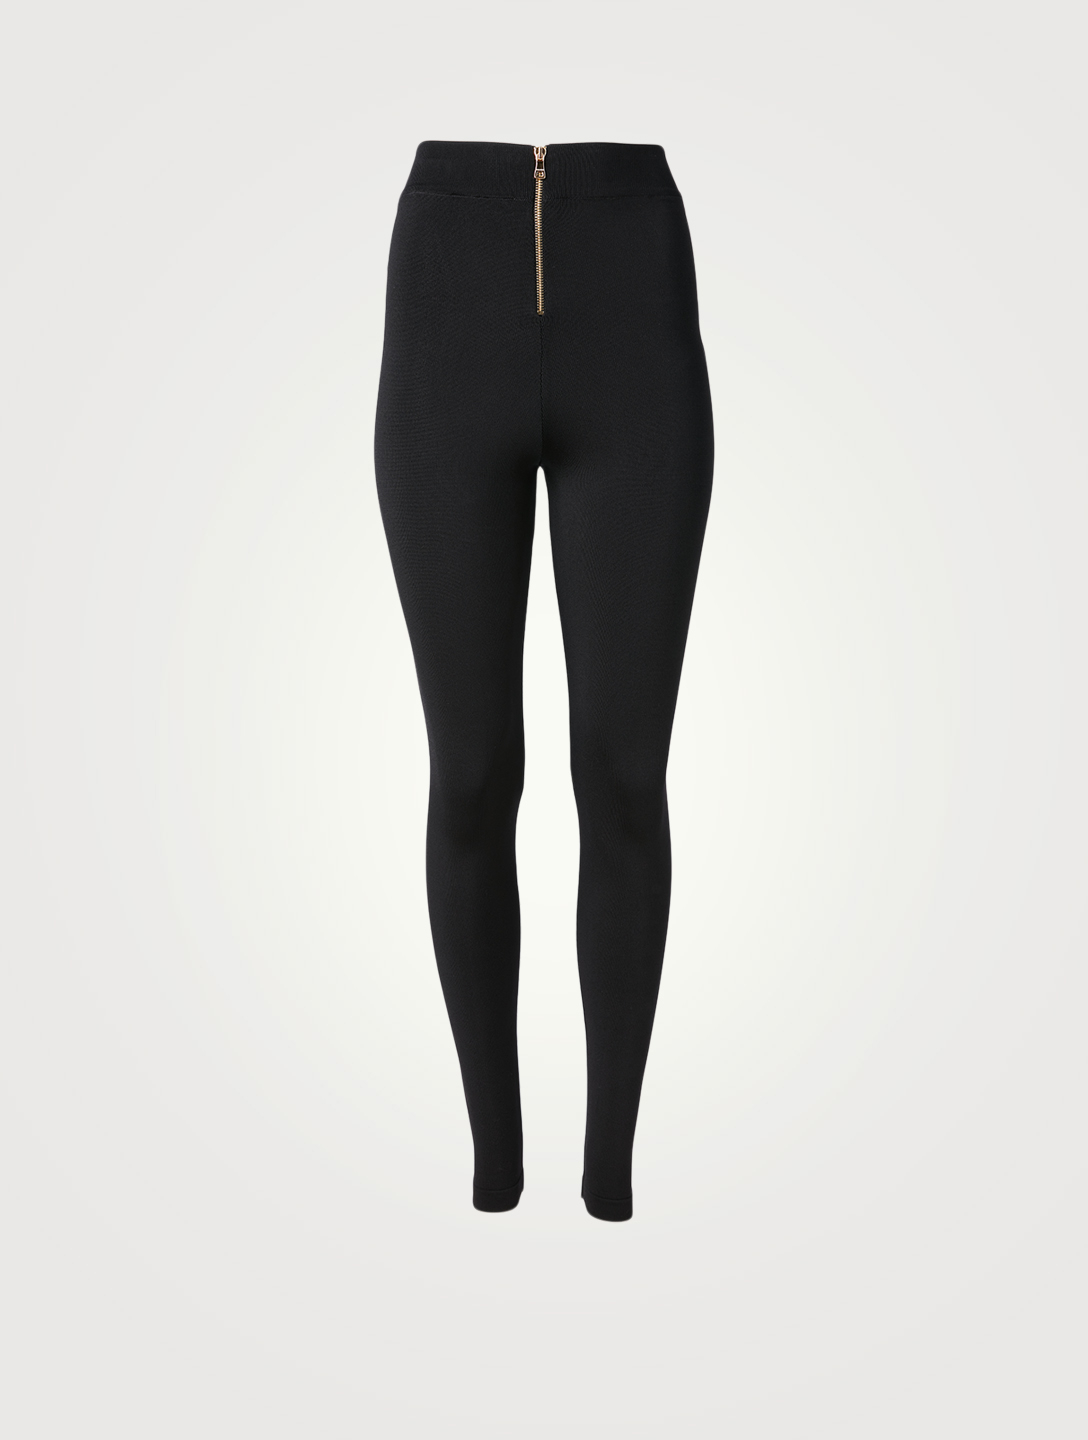 BALMAIN High-Waisted Pants With Buttons Women's Black